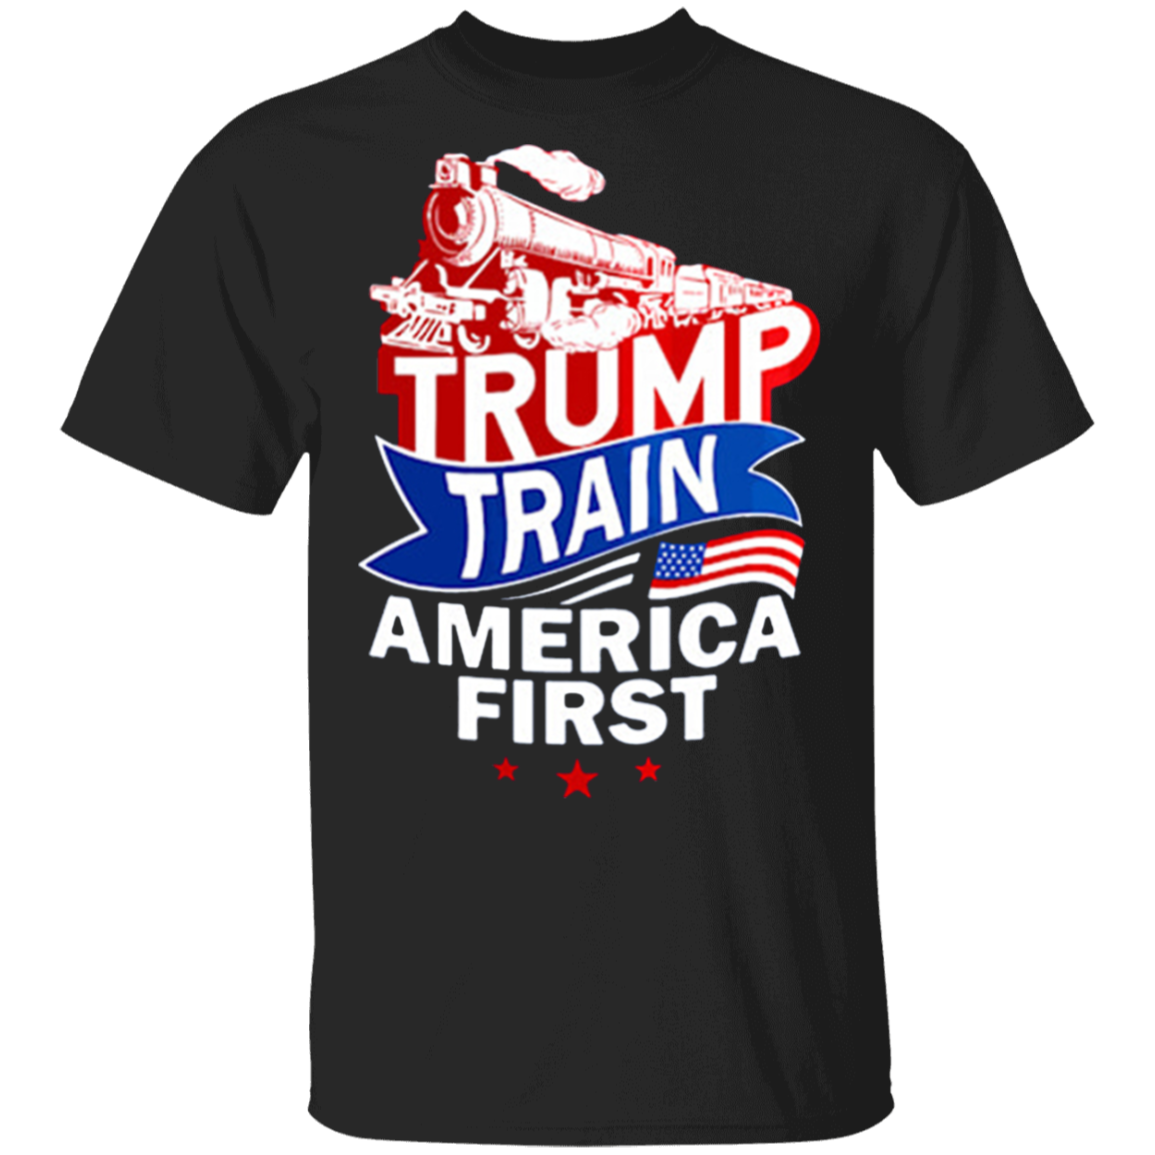 Donald Trump Train America First T-Shirt Trump 2020 Campaign Shirt